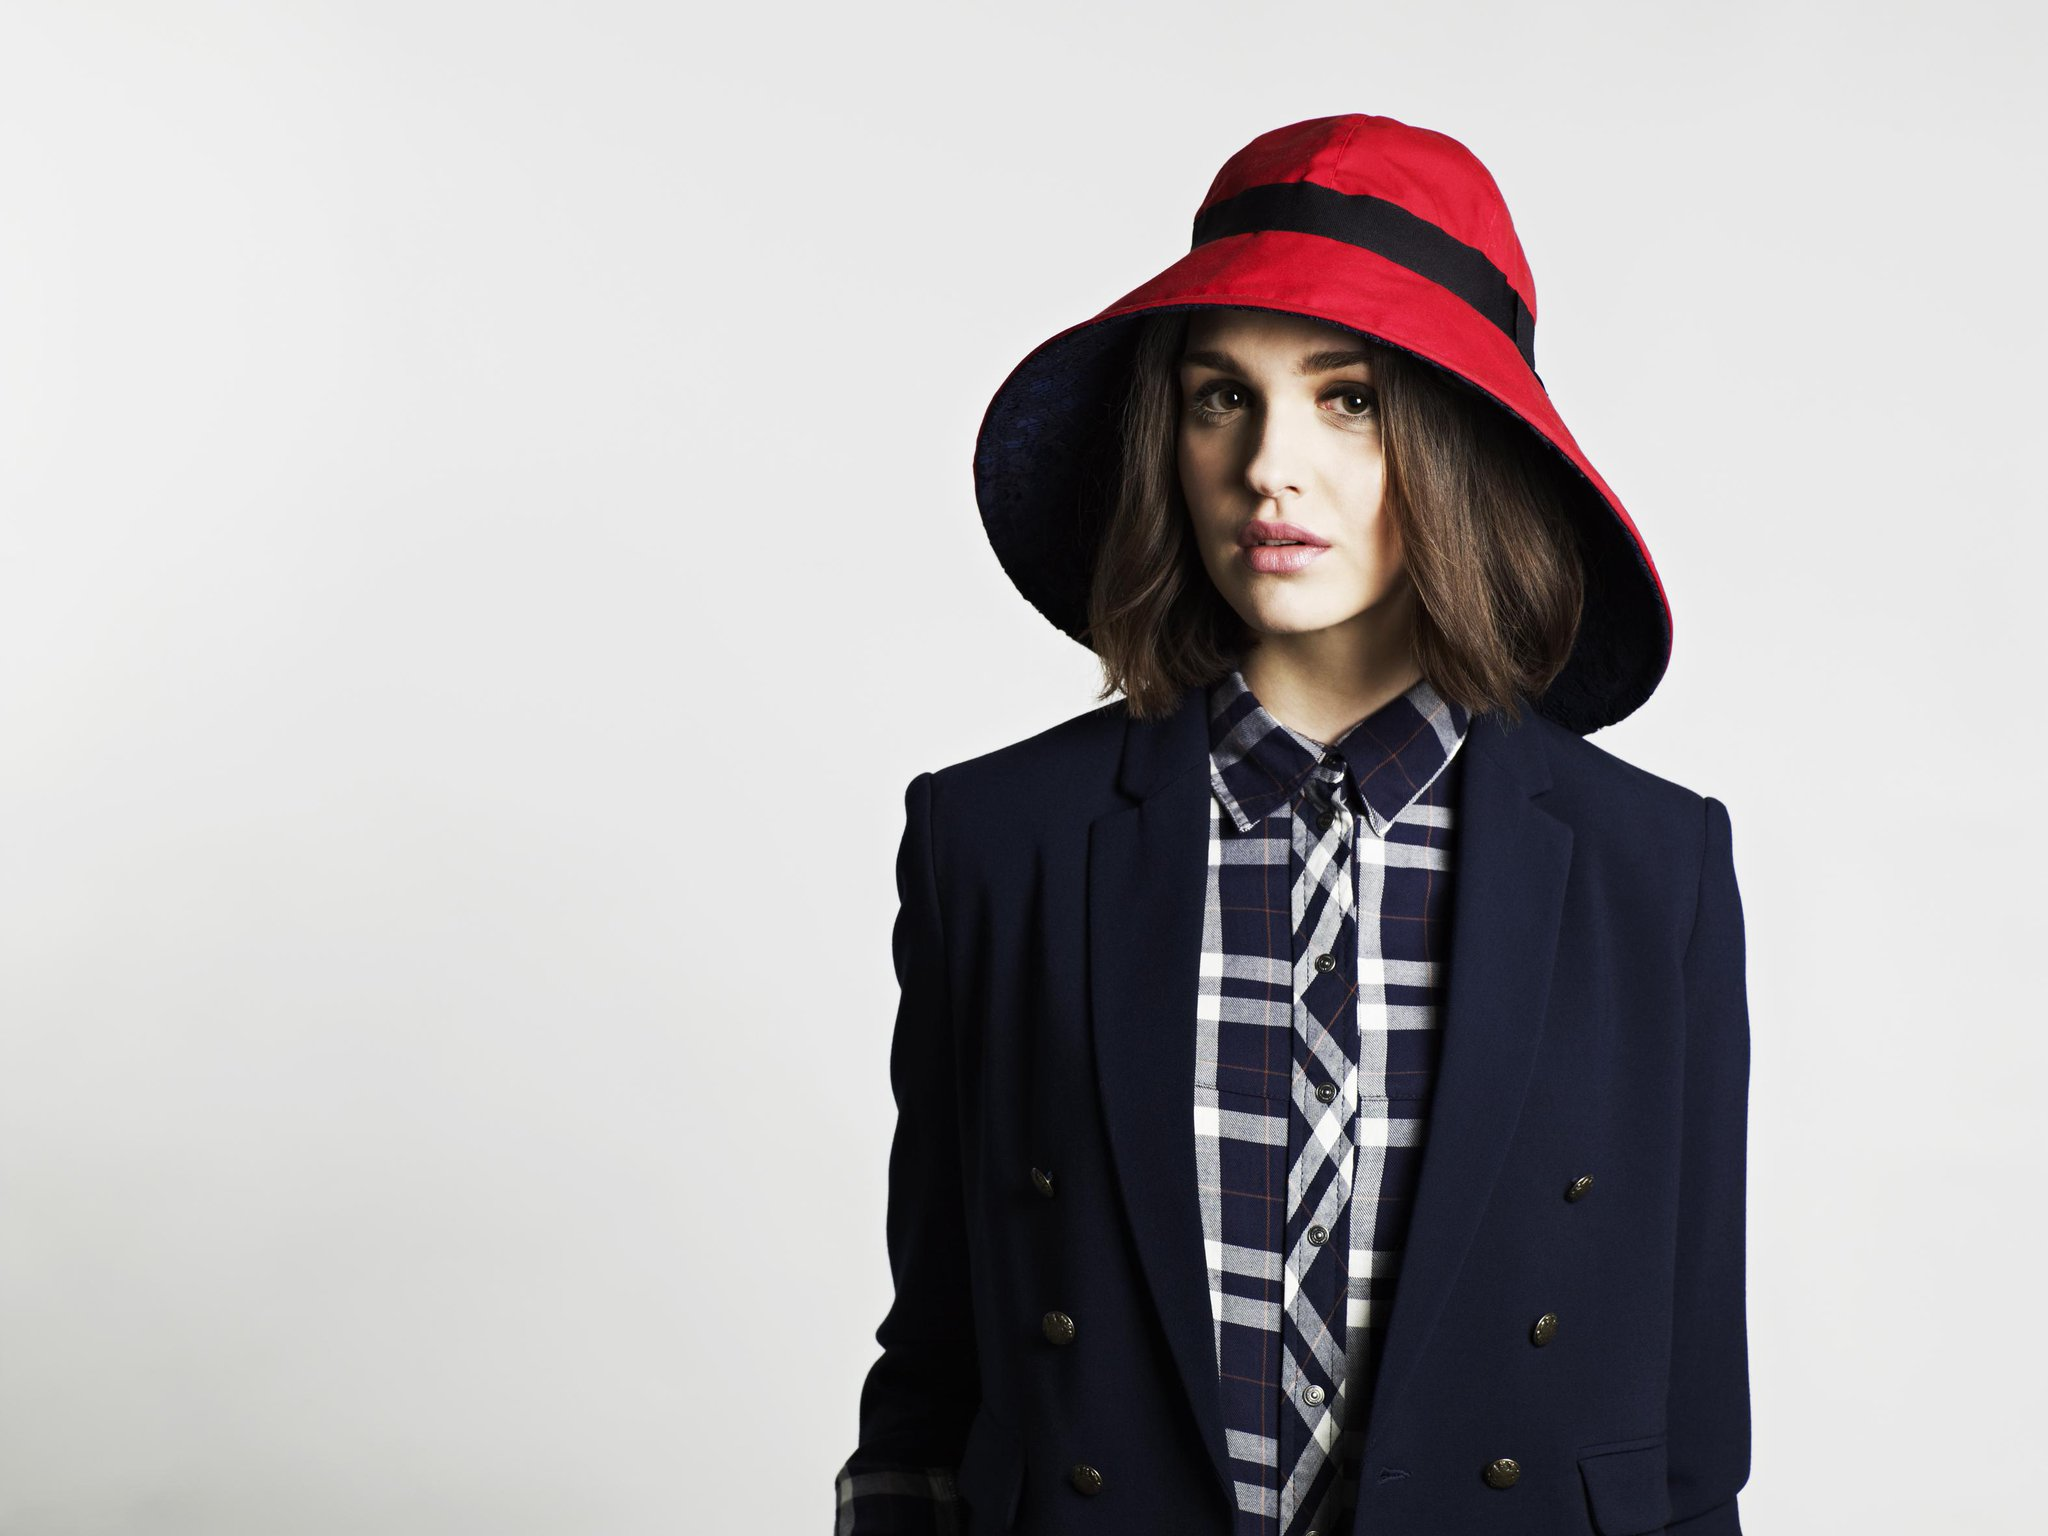 Want to rock a cuter, chicer version of #Paddington 's hat? Try this waterproof, reversible one from @stottandscott http://t.co/oL9GEQpMW2